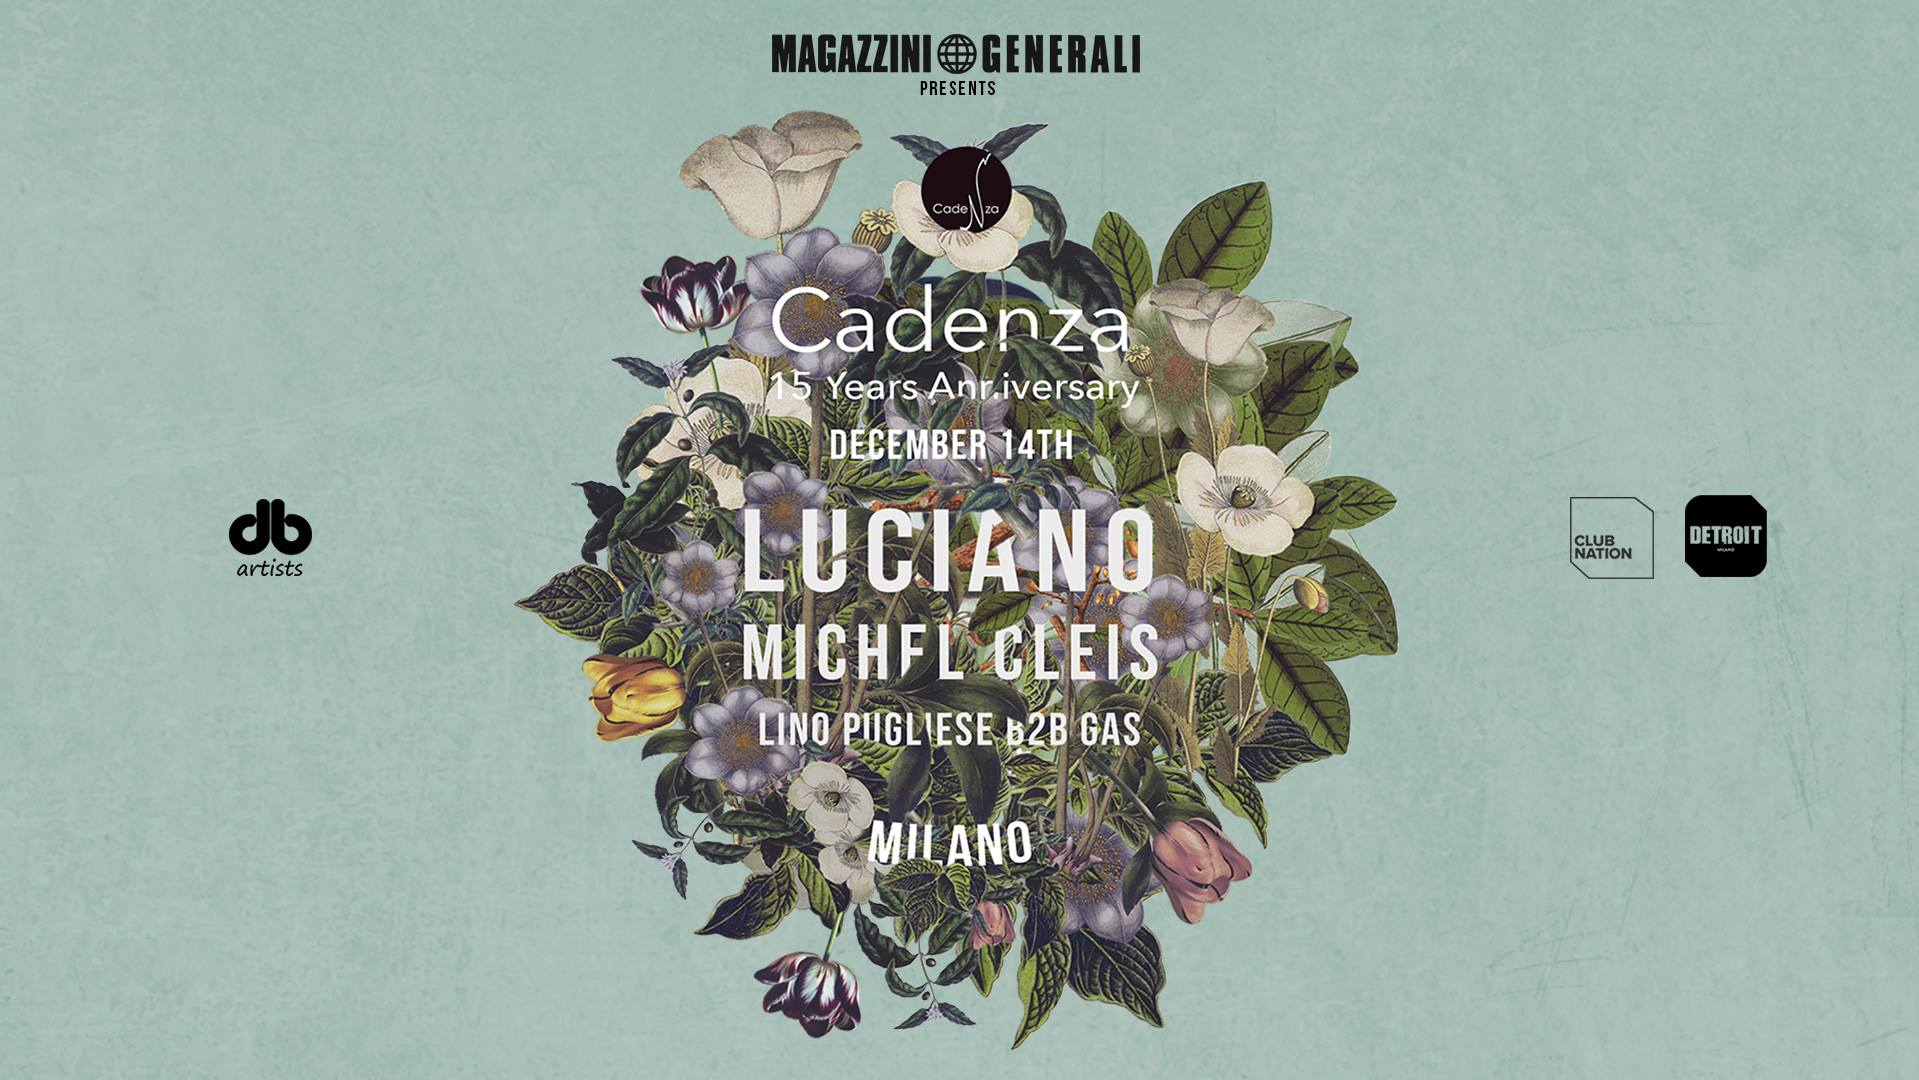 Luciano presents: Cadenza 15 Years Anniversary | Milano